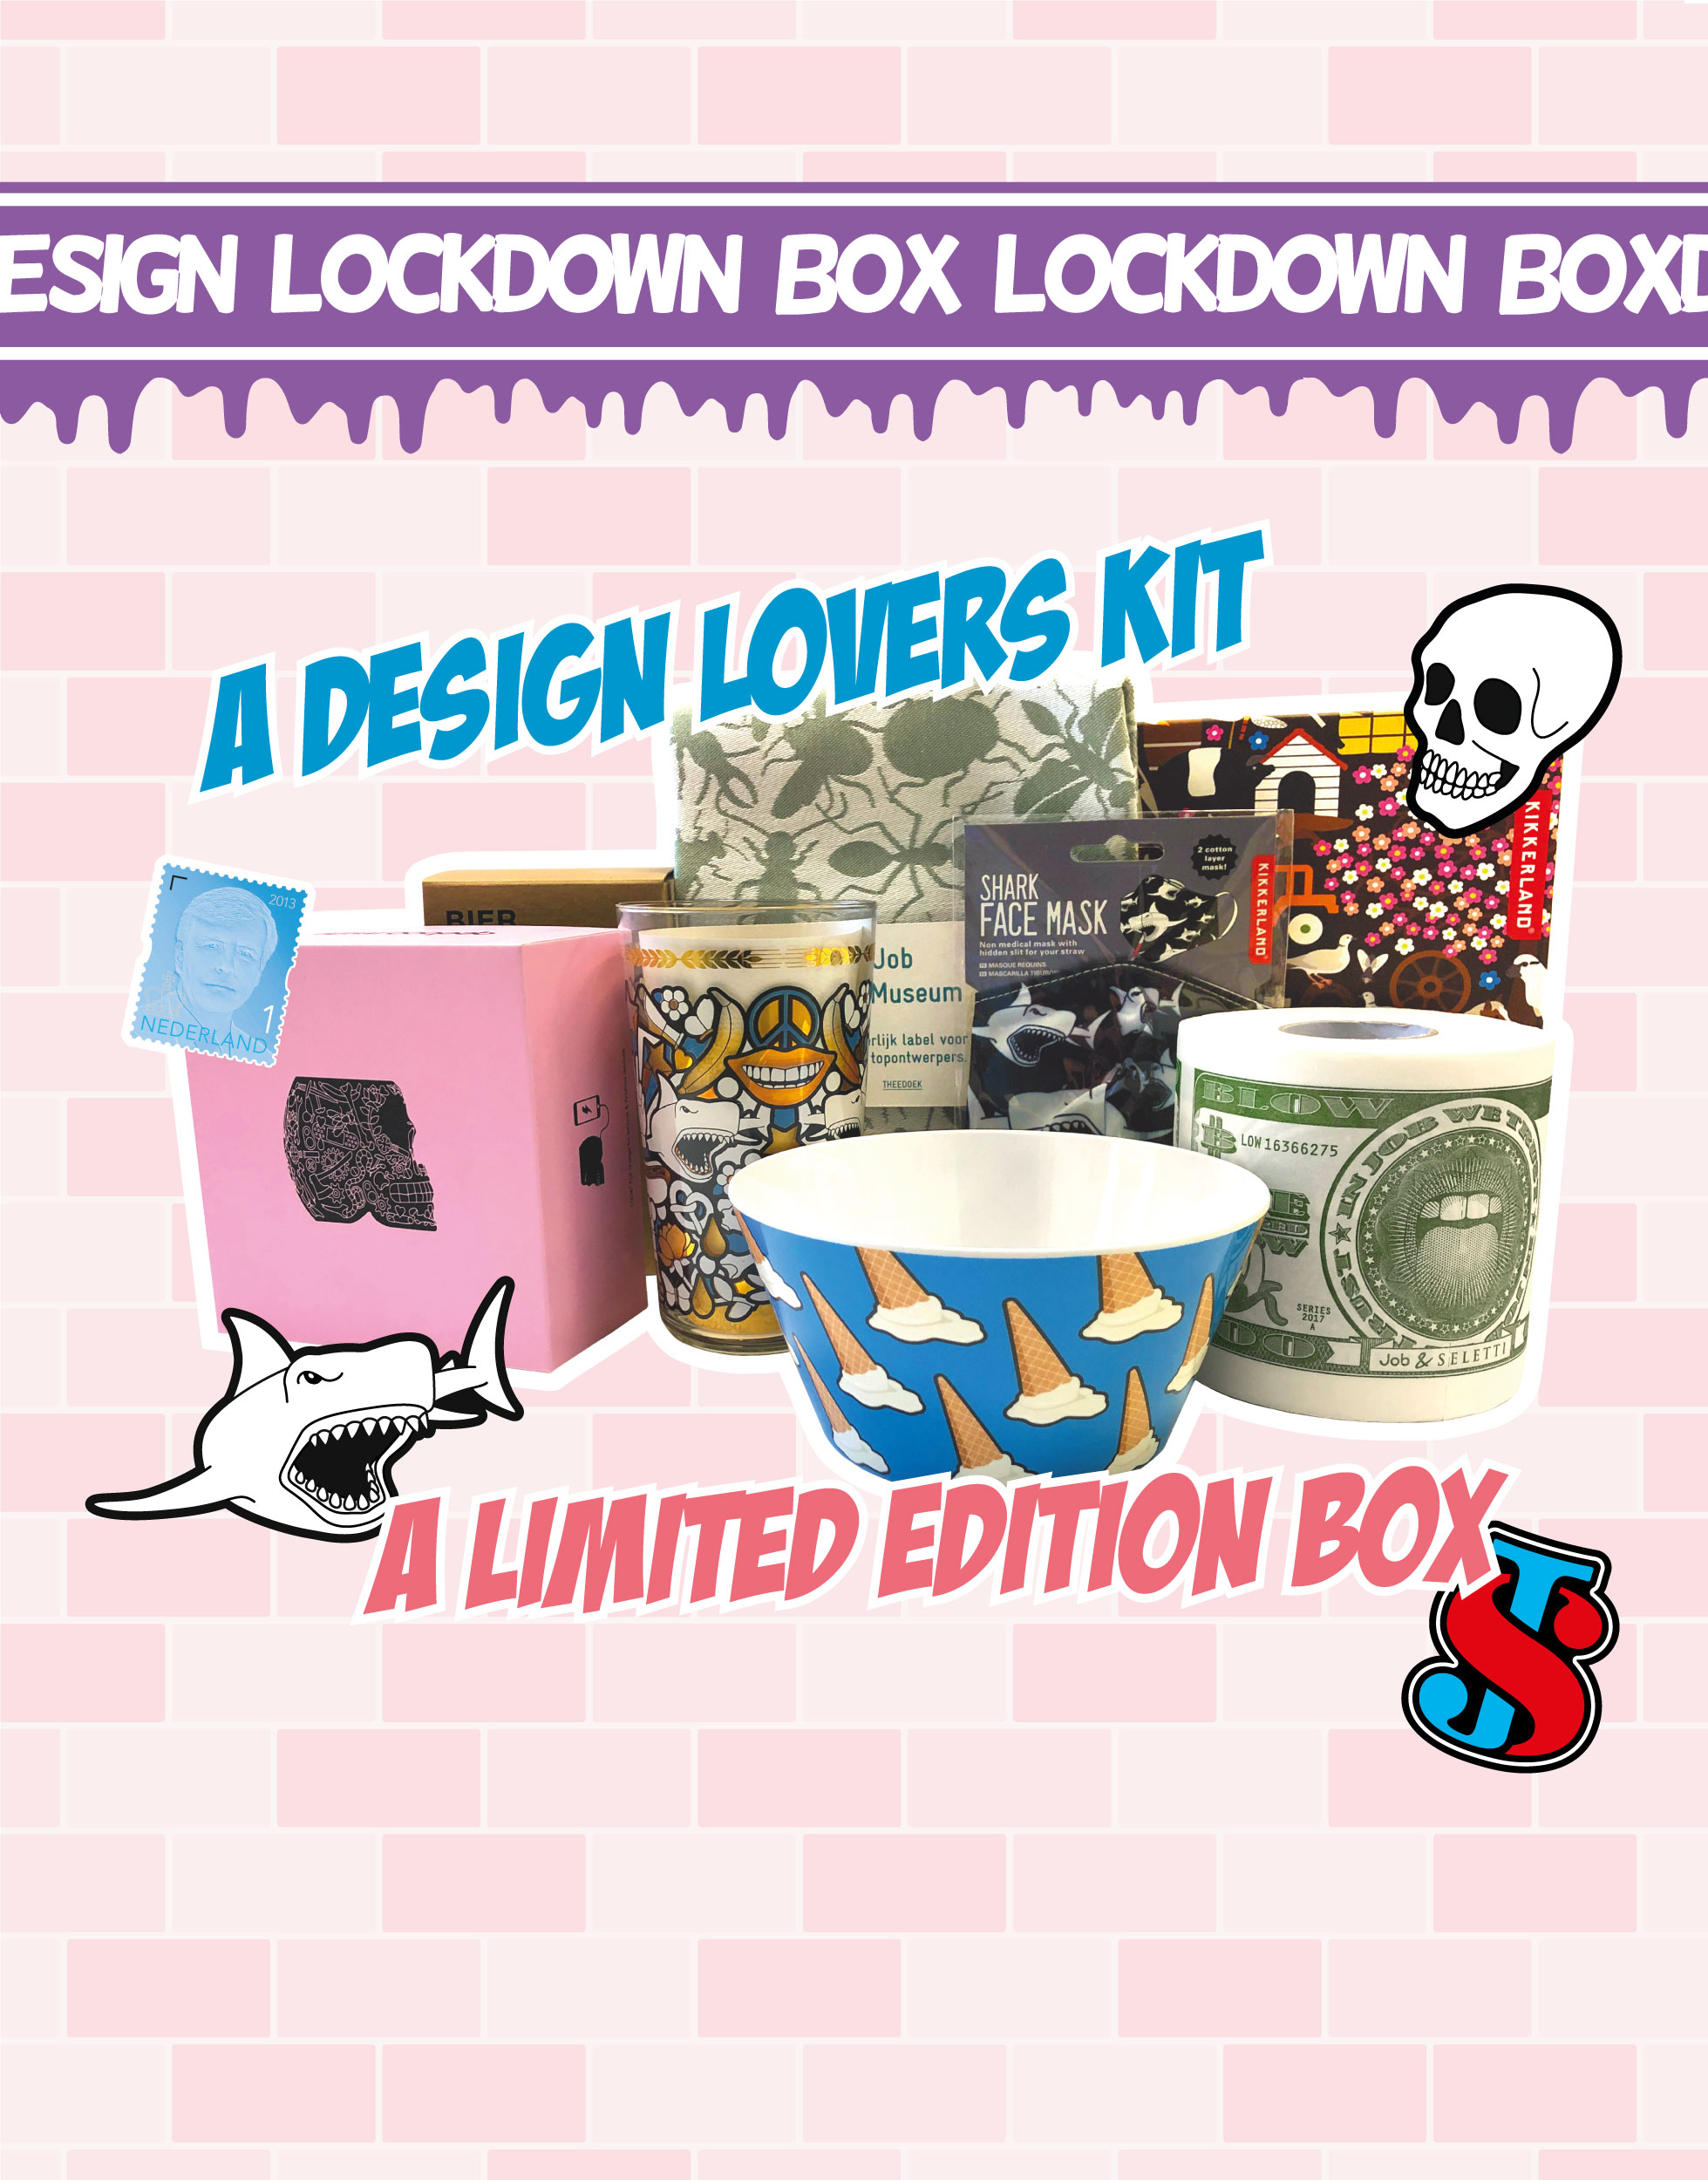 design-lockdown-box-11